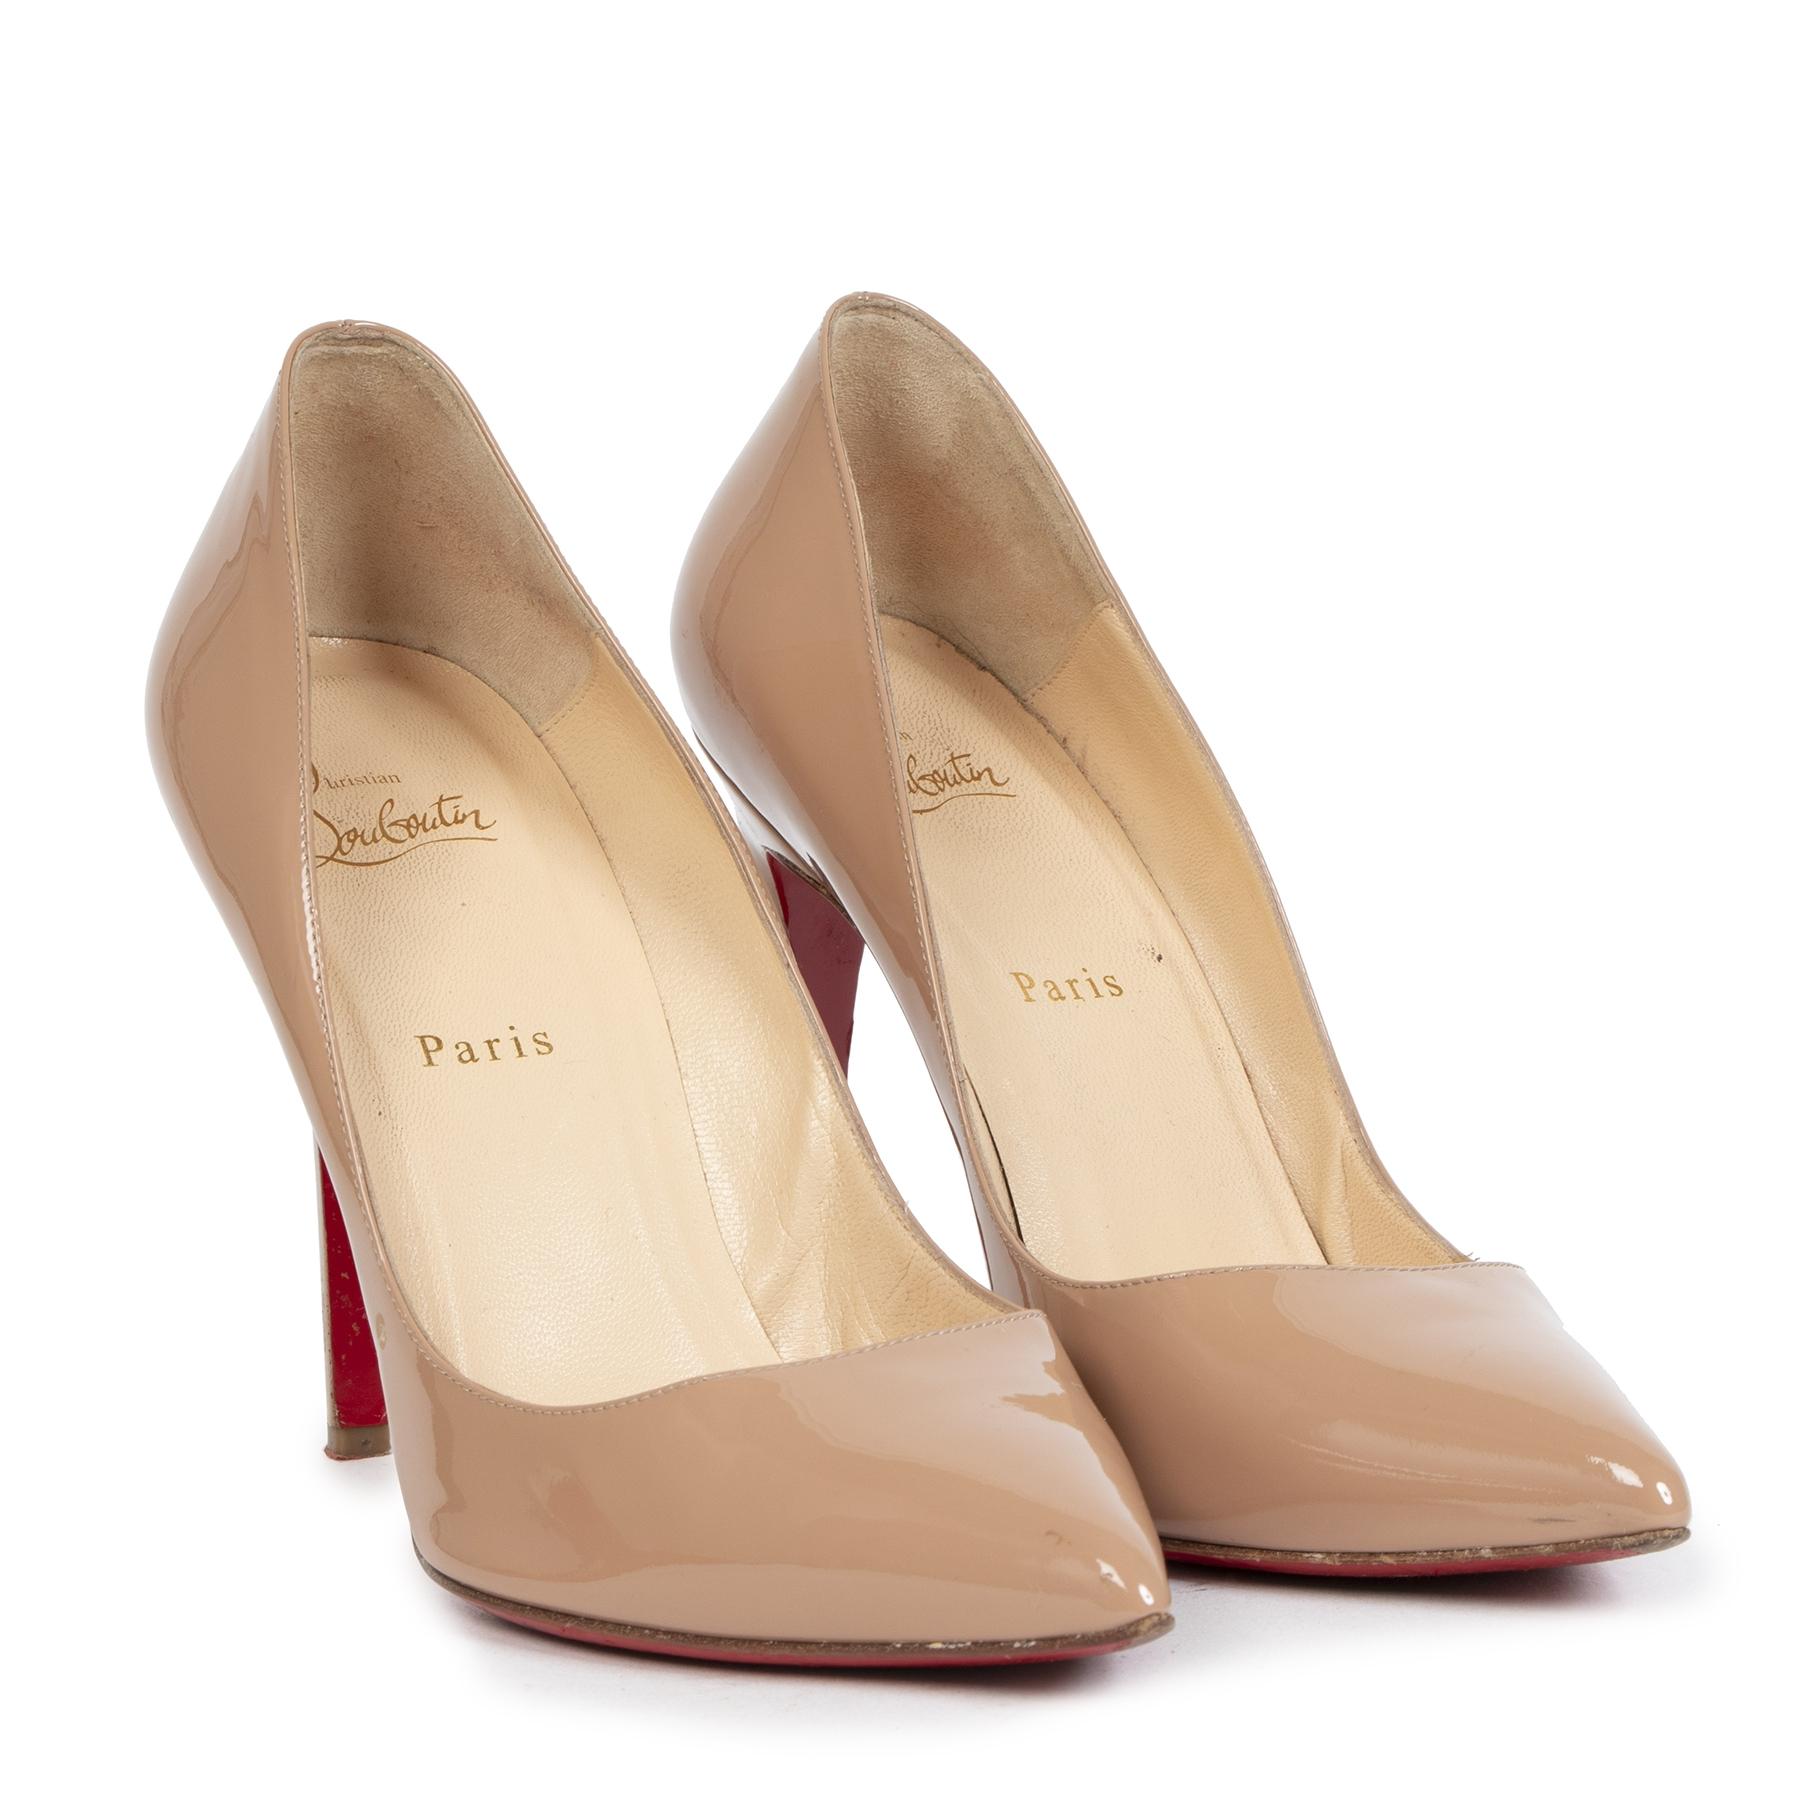 Buy authentic secondhand Christian Louboutin items online at LabelLOV for the right price, shop safe and secure online.